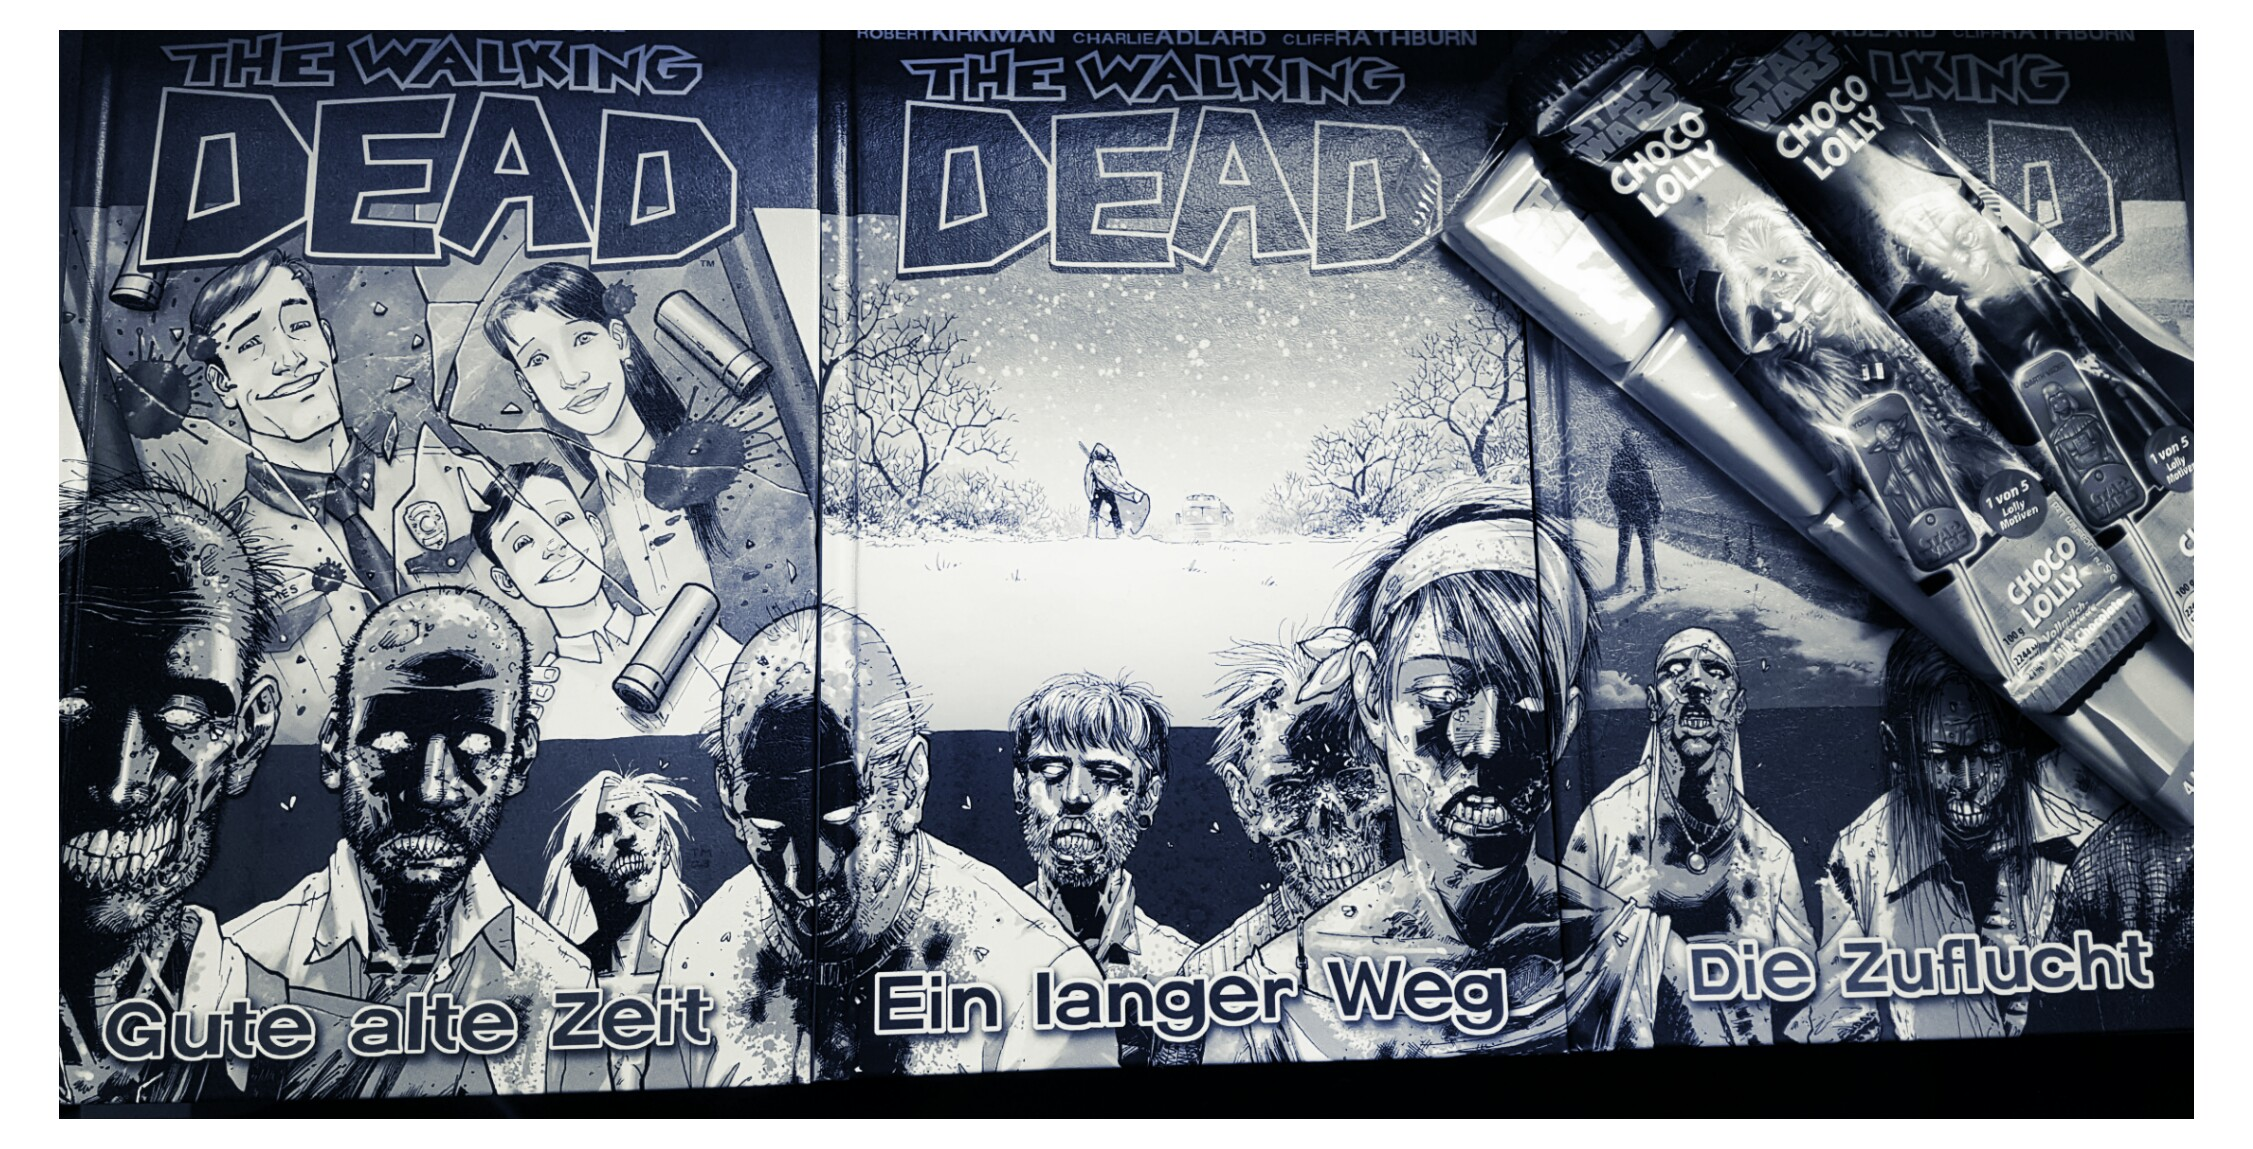 [Short] Robert Kirkman – The Walking Dead. Graphic Novels